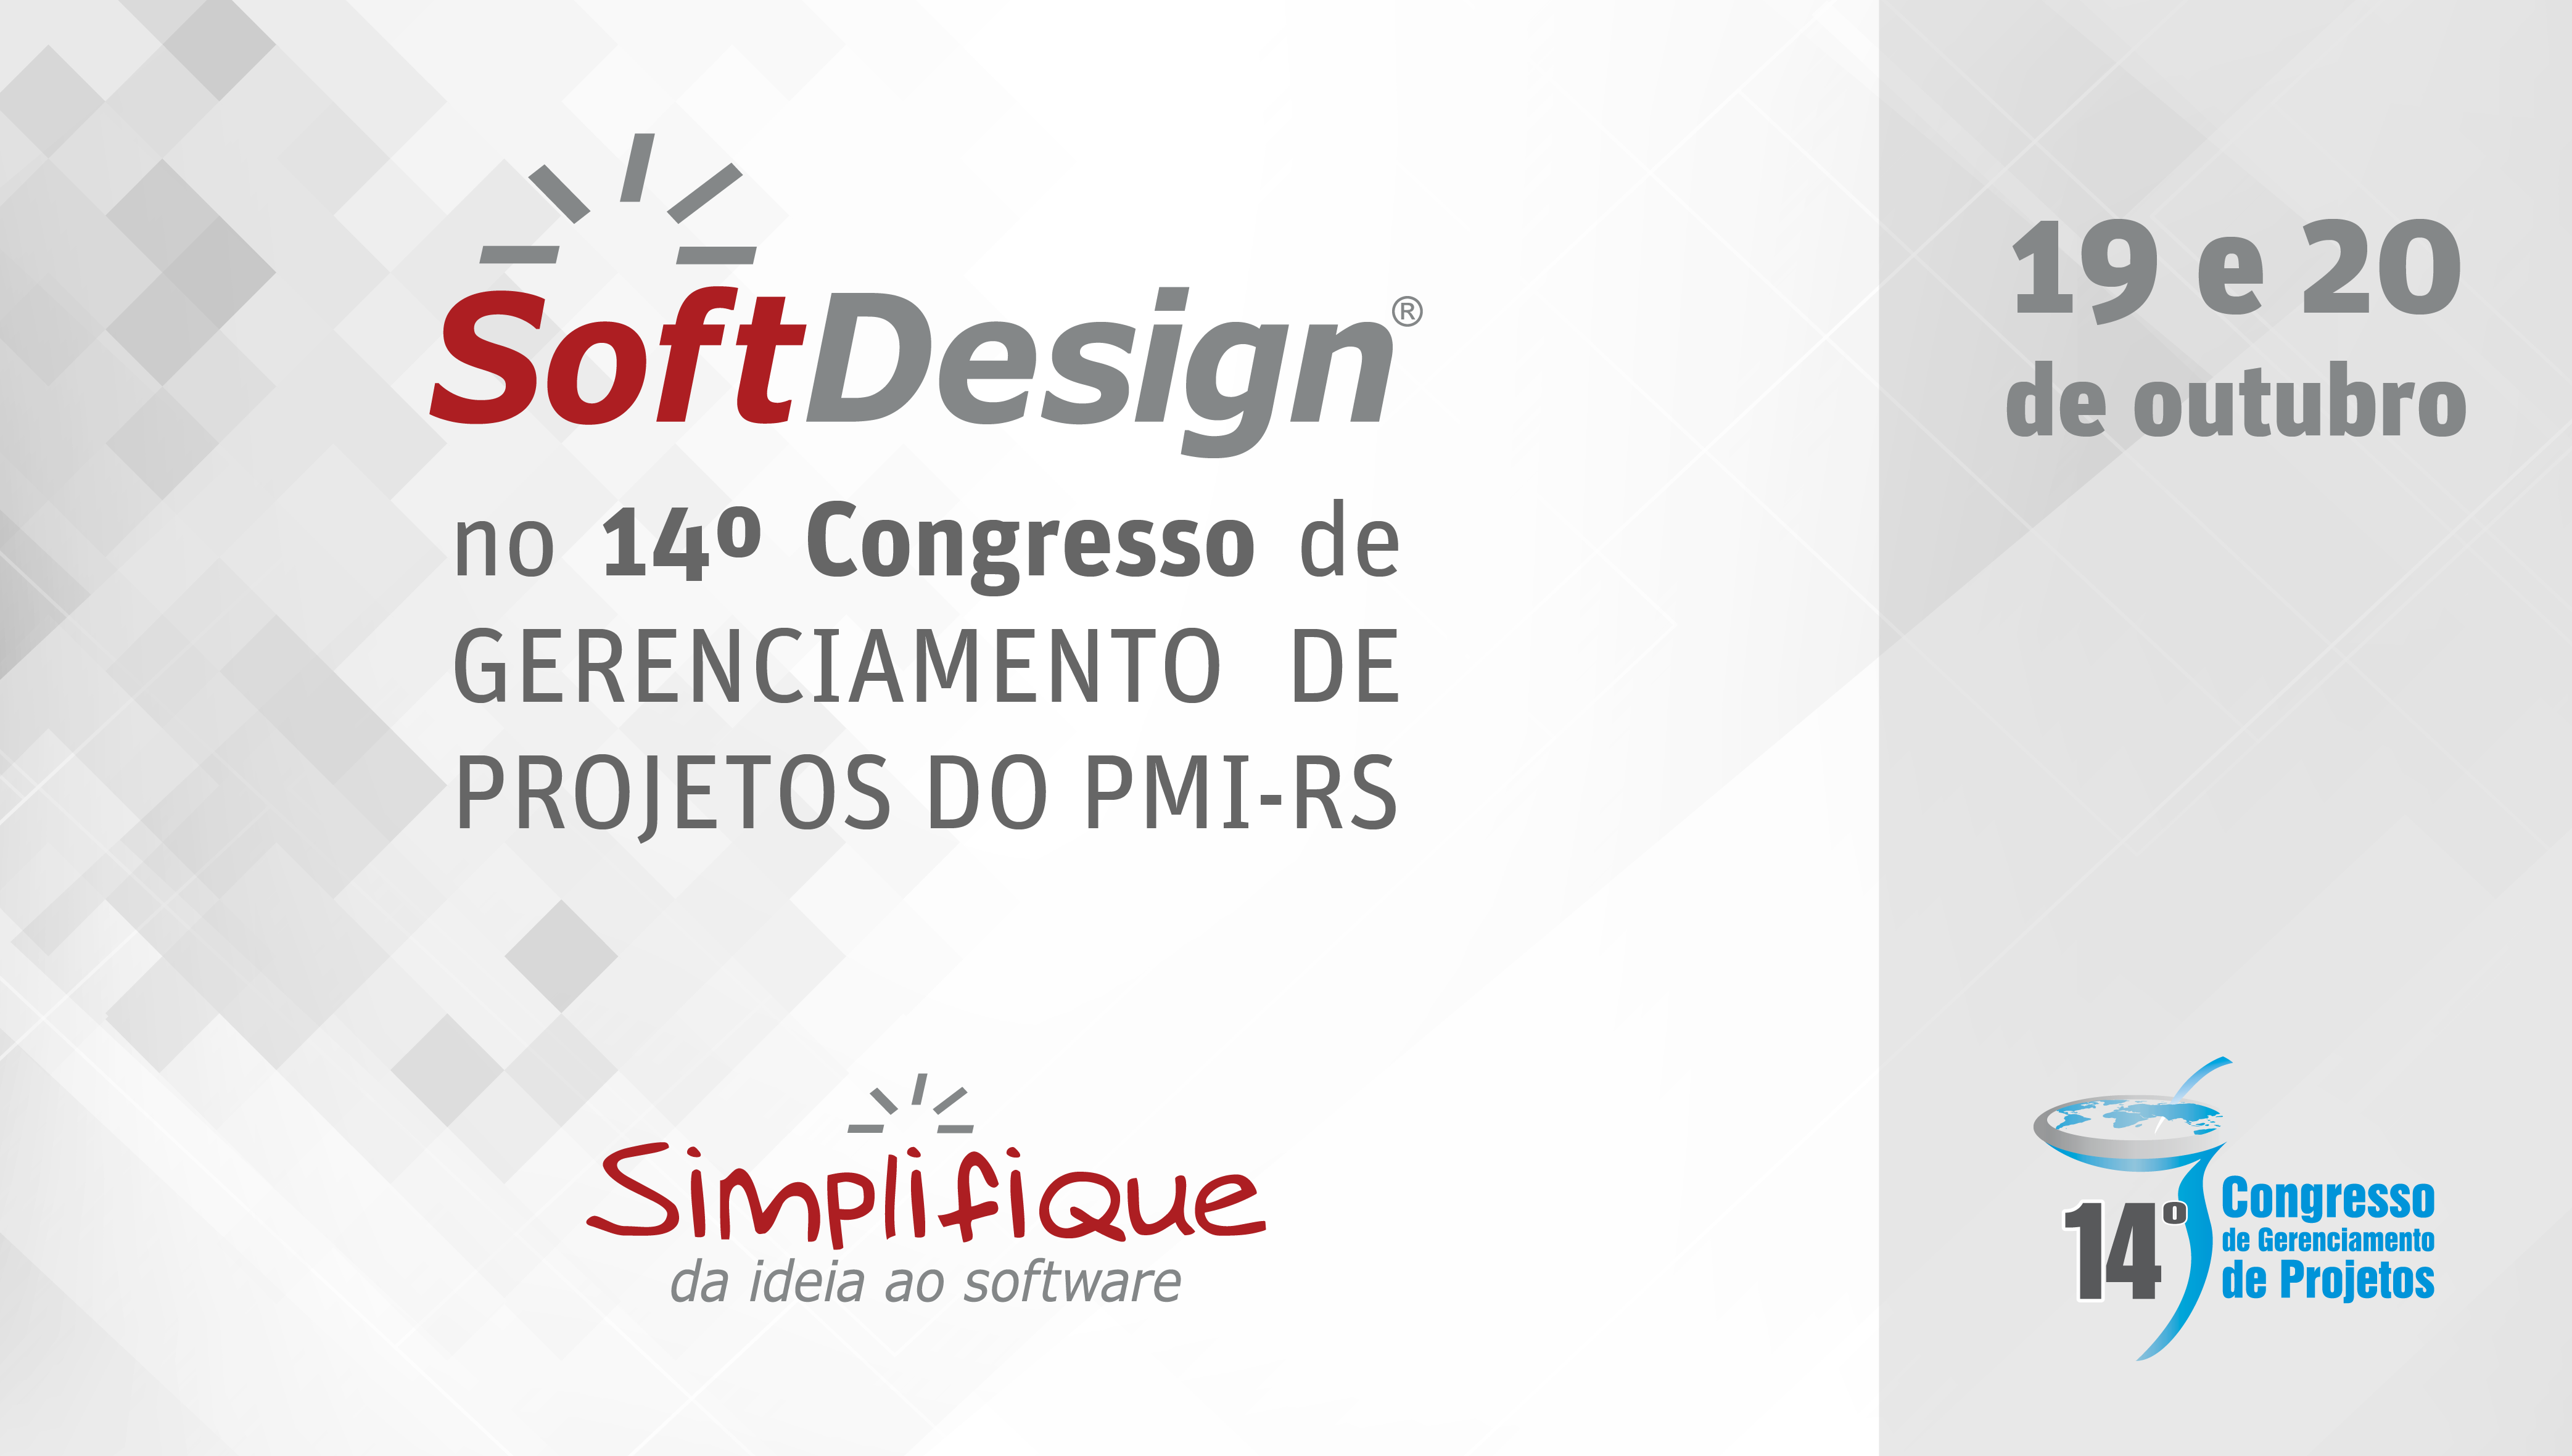 SoftDesign no 14º Congresso de Gerenciamento de Projetos do PMI-RS